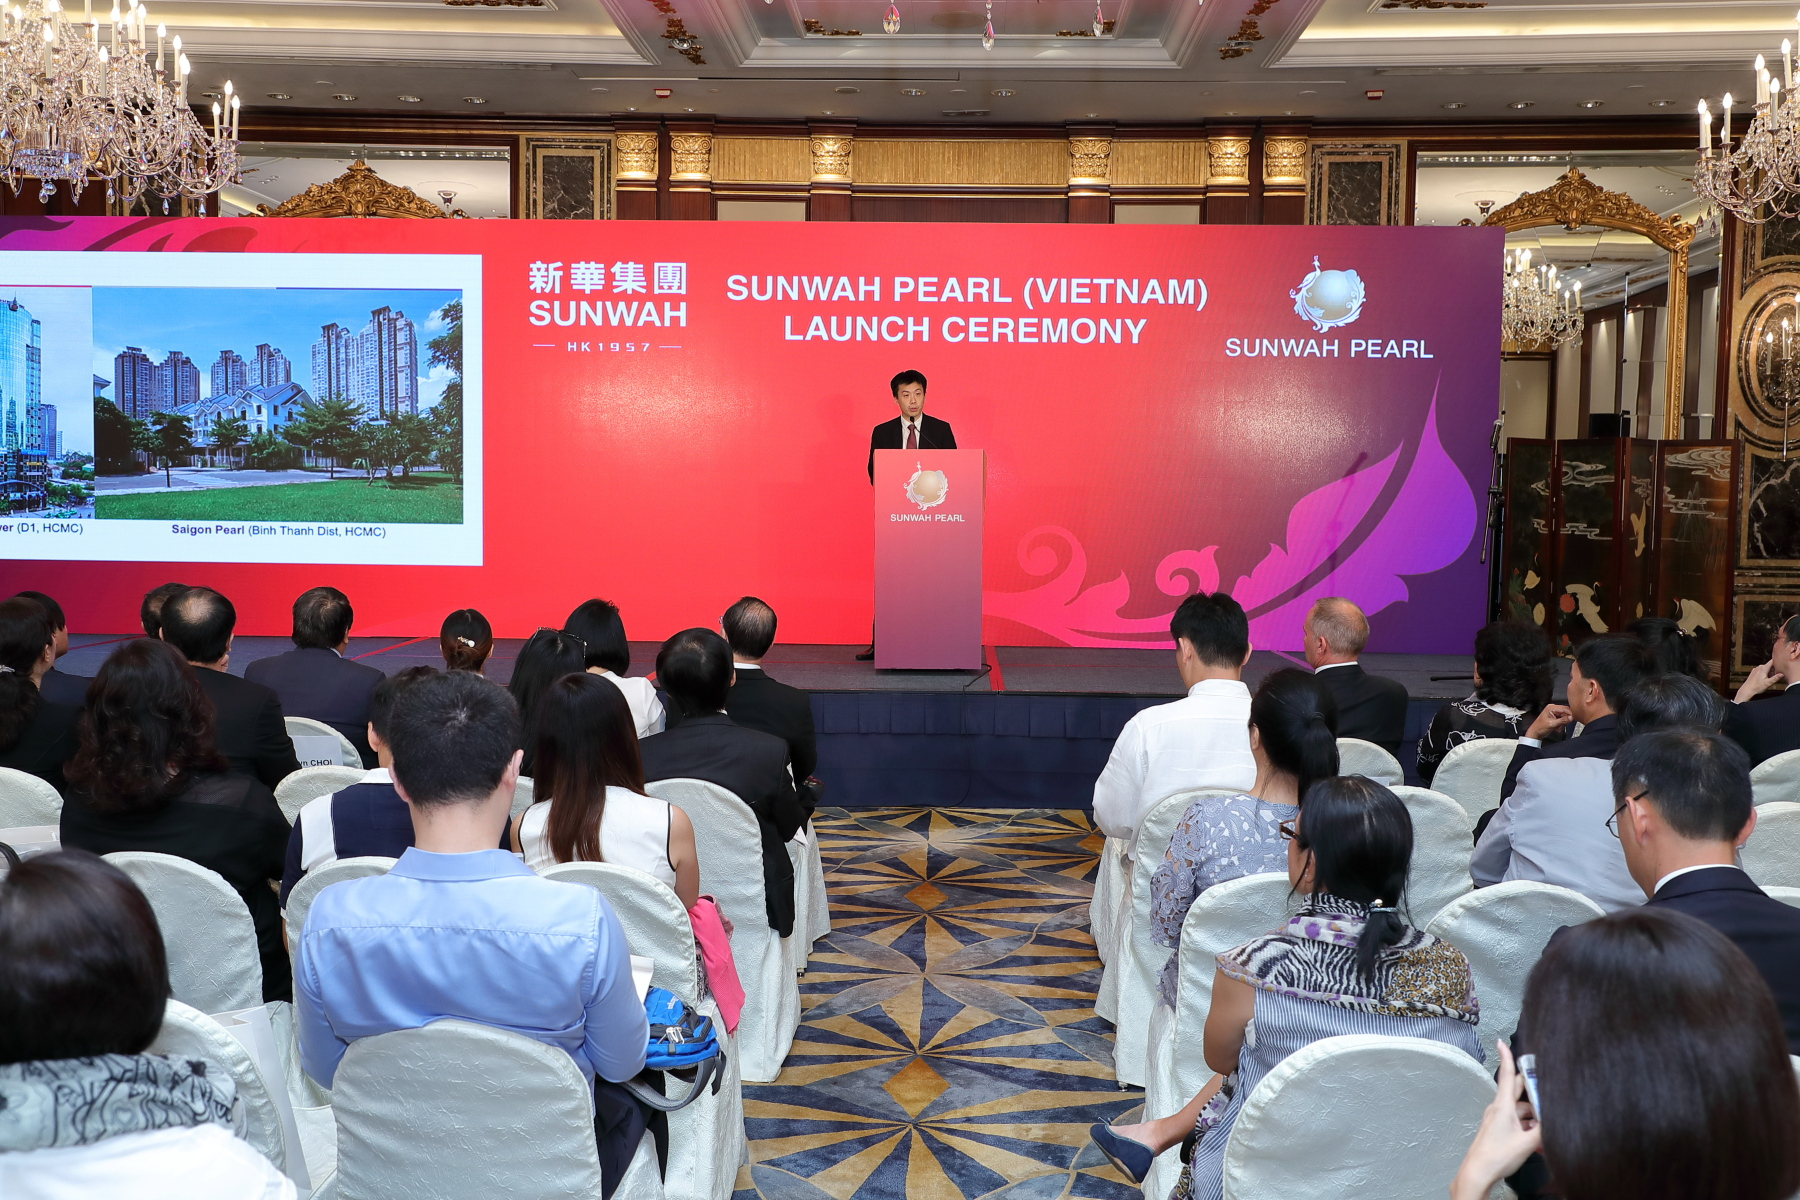 Mr Johnson Choi delivered speech at Sunwah Pearl Project Launch Ceremony in Hong Kong